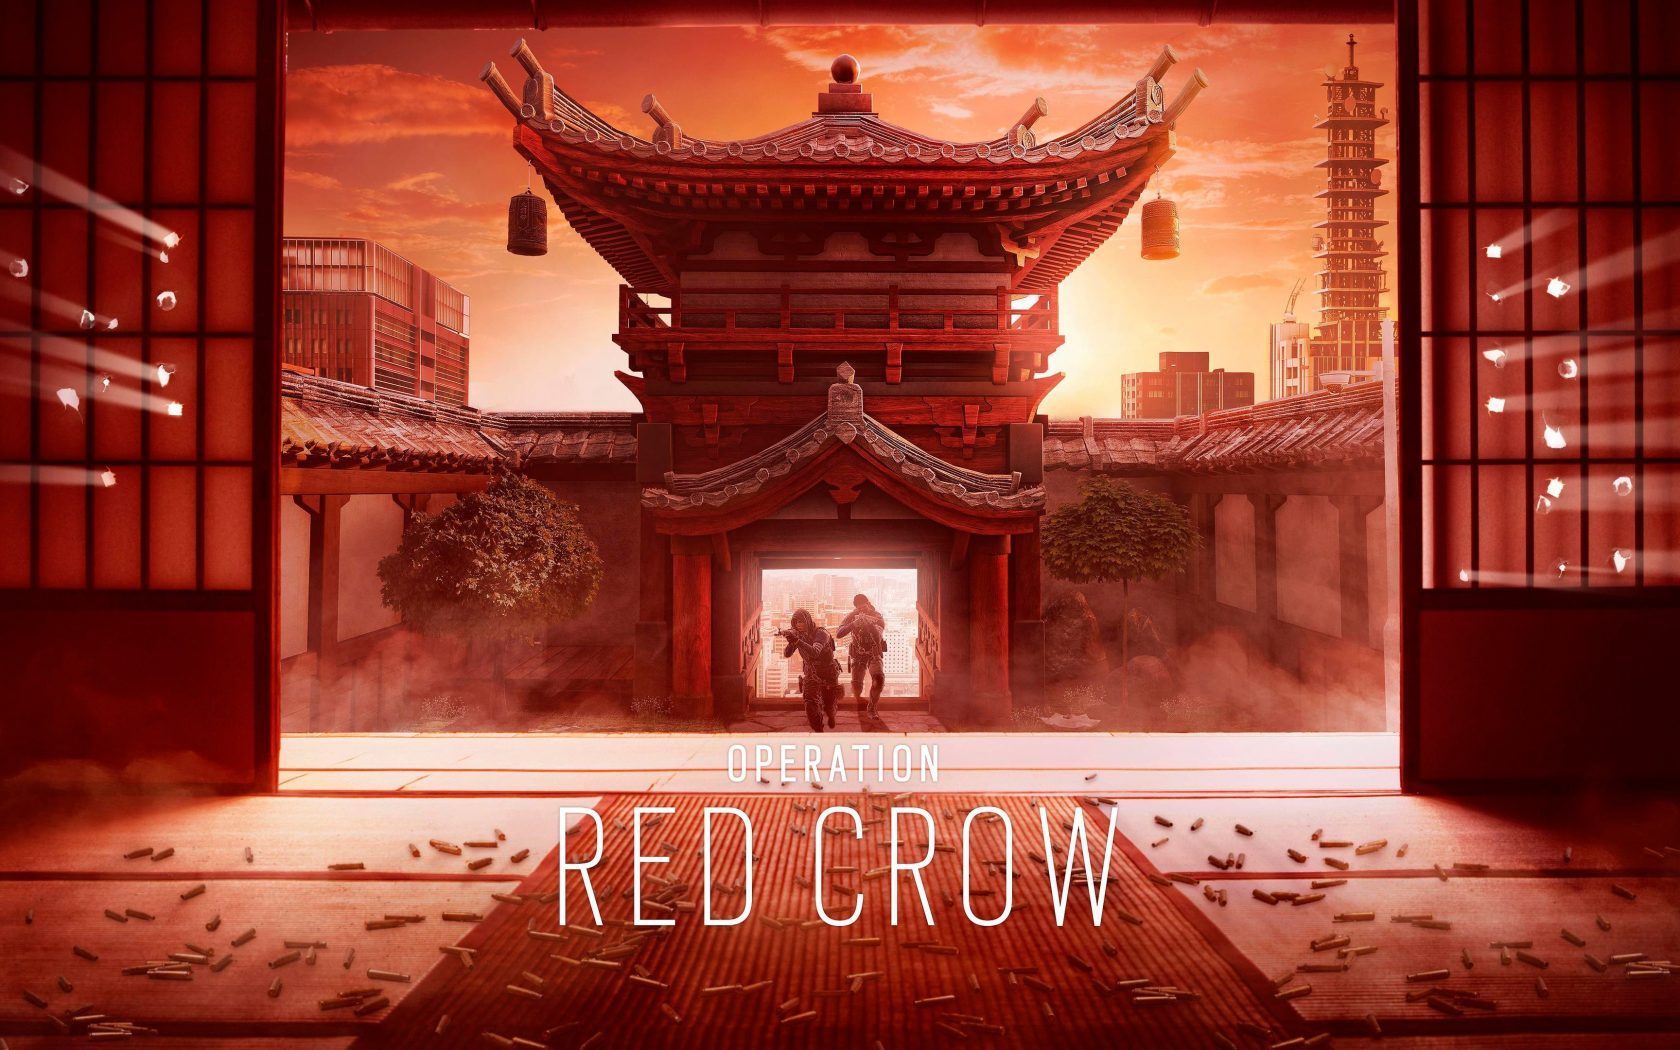 Full Hd Wallpapers For Mobile 480x800 Operation Red Crow Wallpaper 4k Hd Wallpaper Background